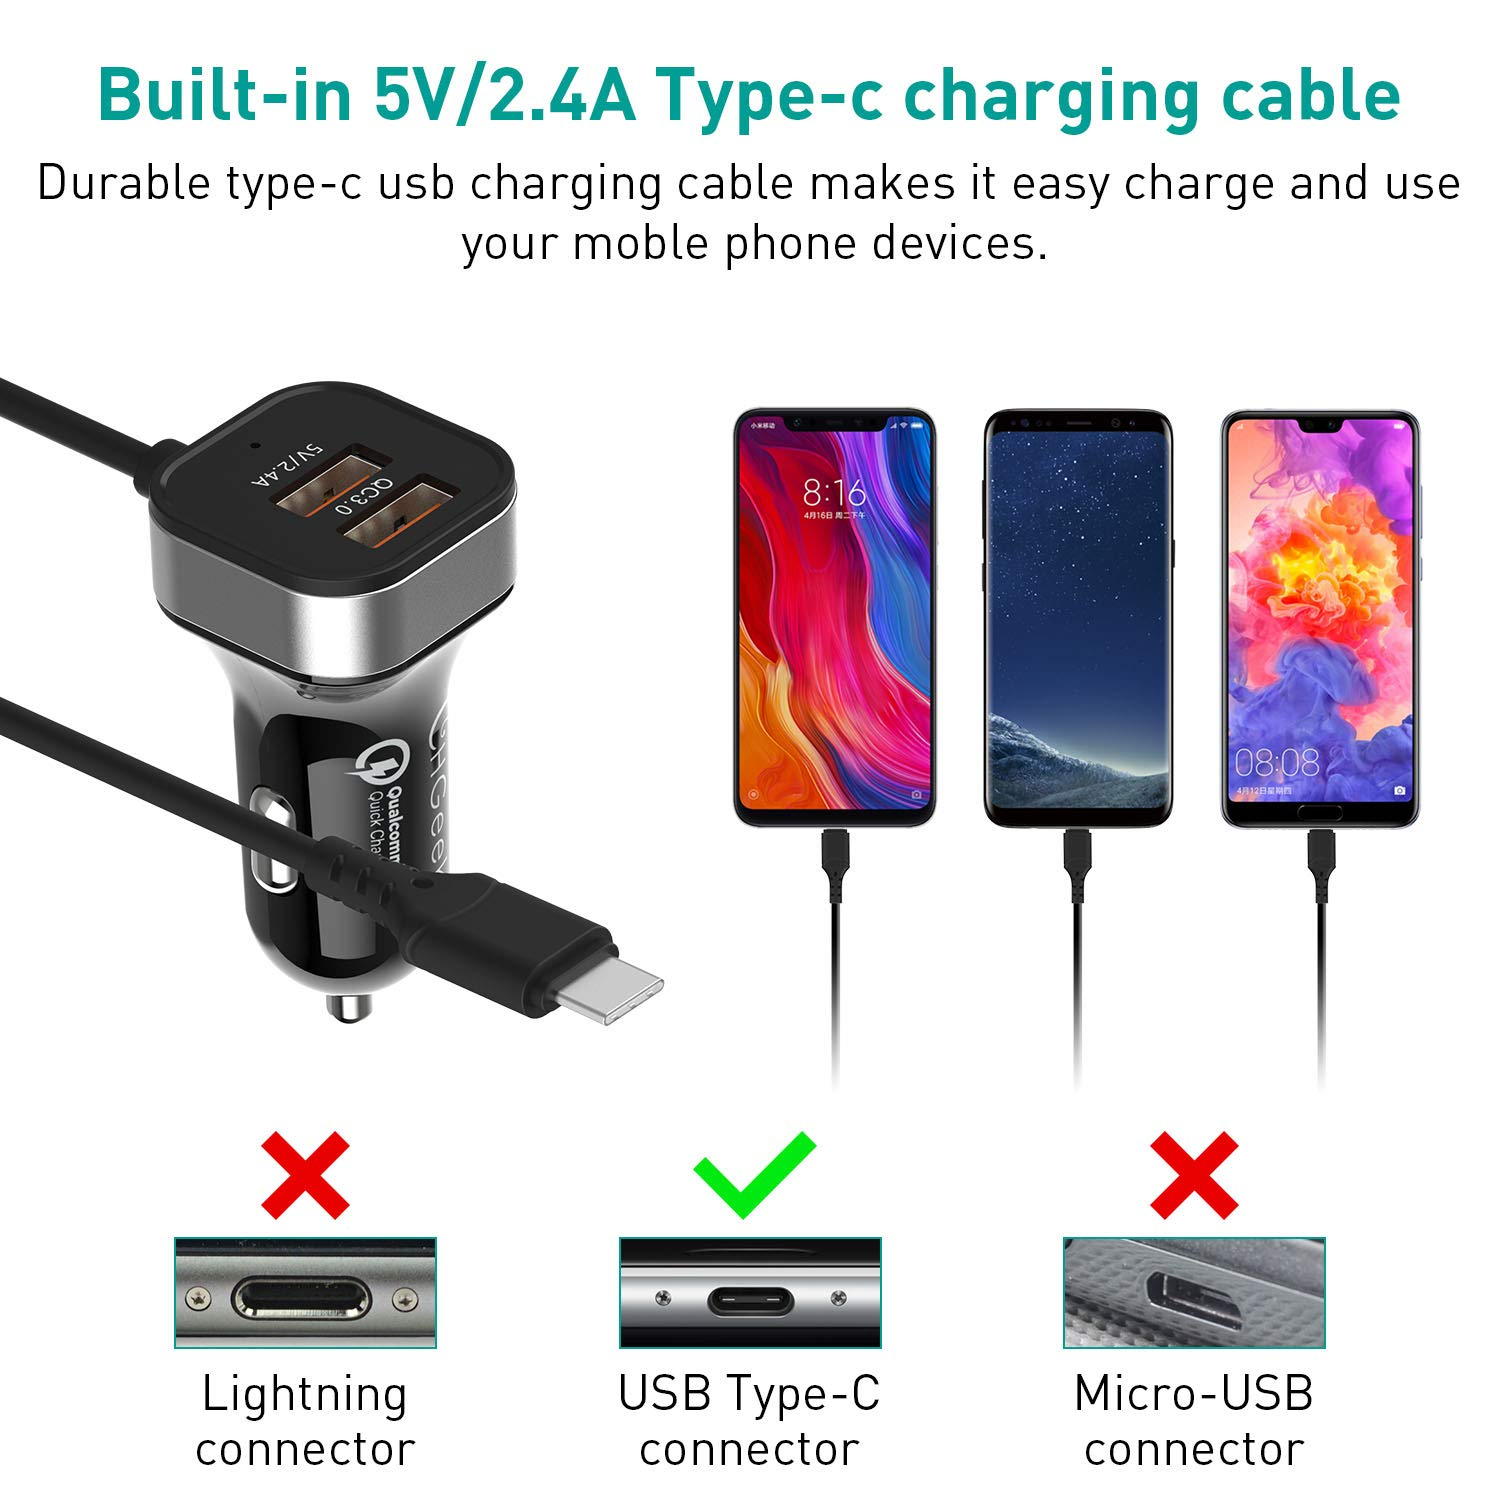 CHGeek 30W Chargeur Allume Cigare USB Rapide QC3.0 e 5V 2.4A Extreme Mini Adaptateur Allume-cigare USB avec Smart IC USB Port pour iPhone Chargeur Voiture USB Samsung,Android.